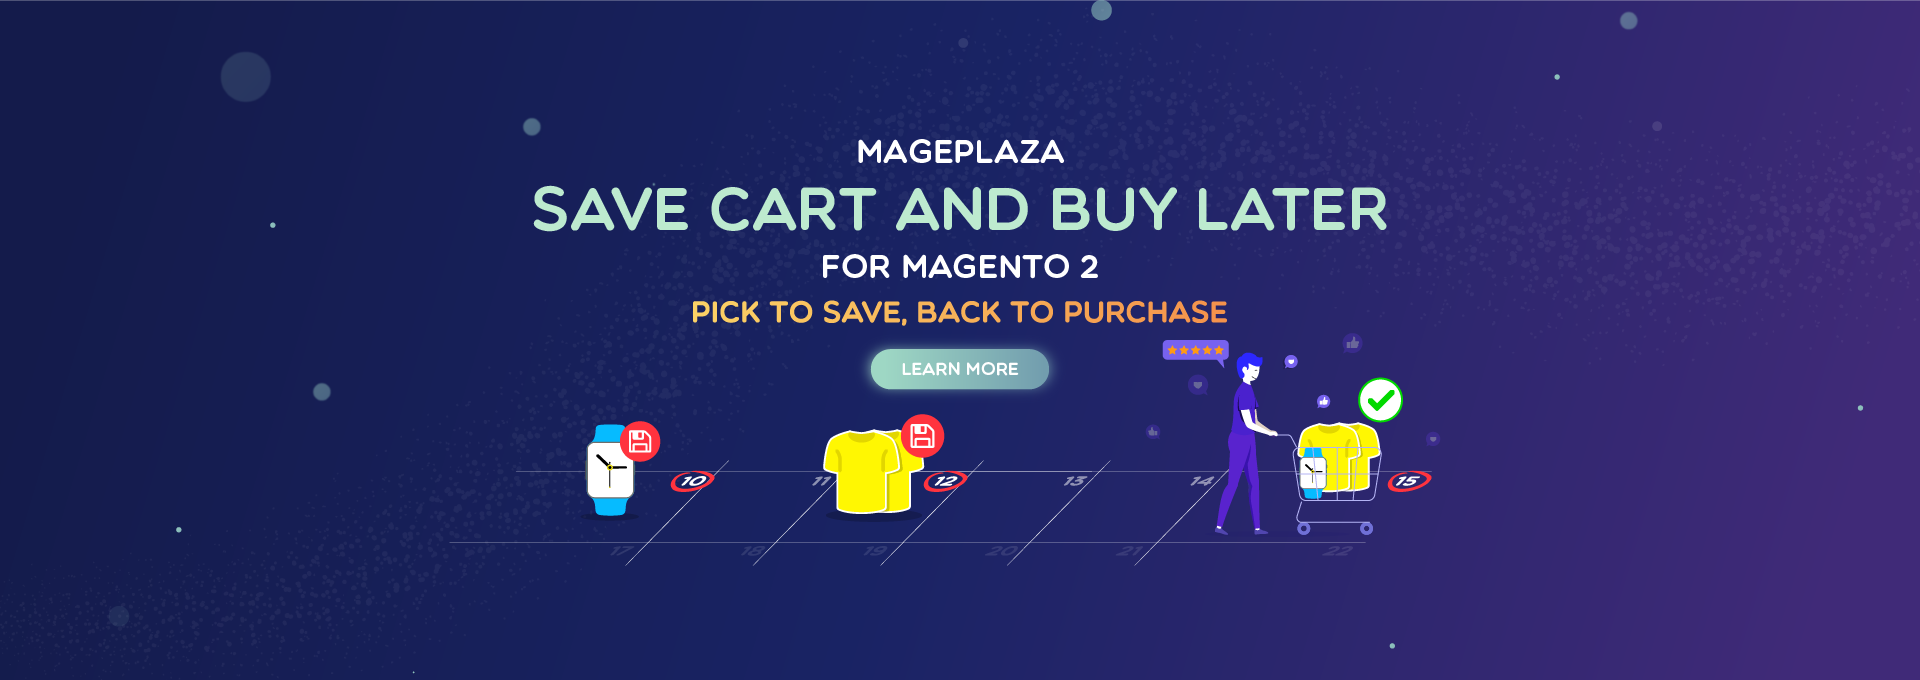 How to offer convenient shopping with Magento 2 Save Cart And Buy Later